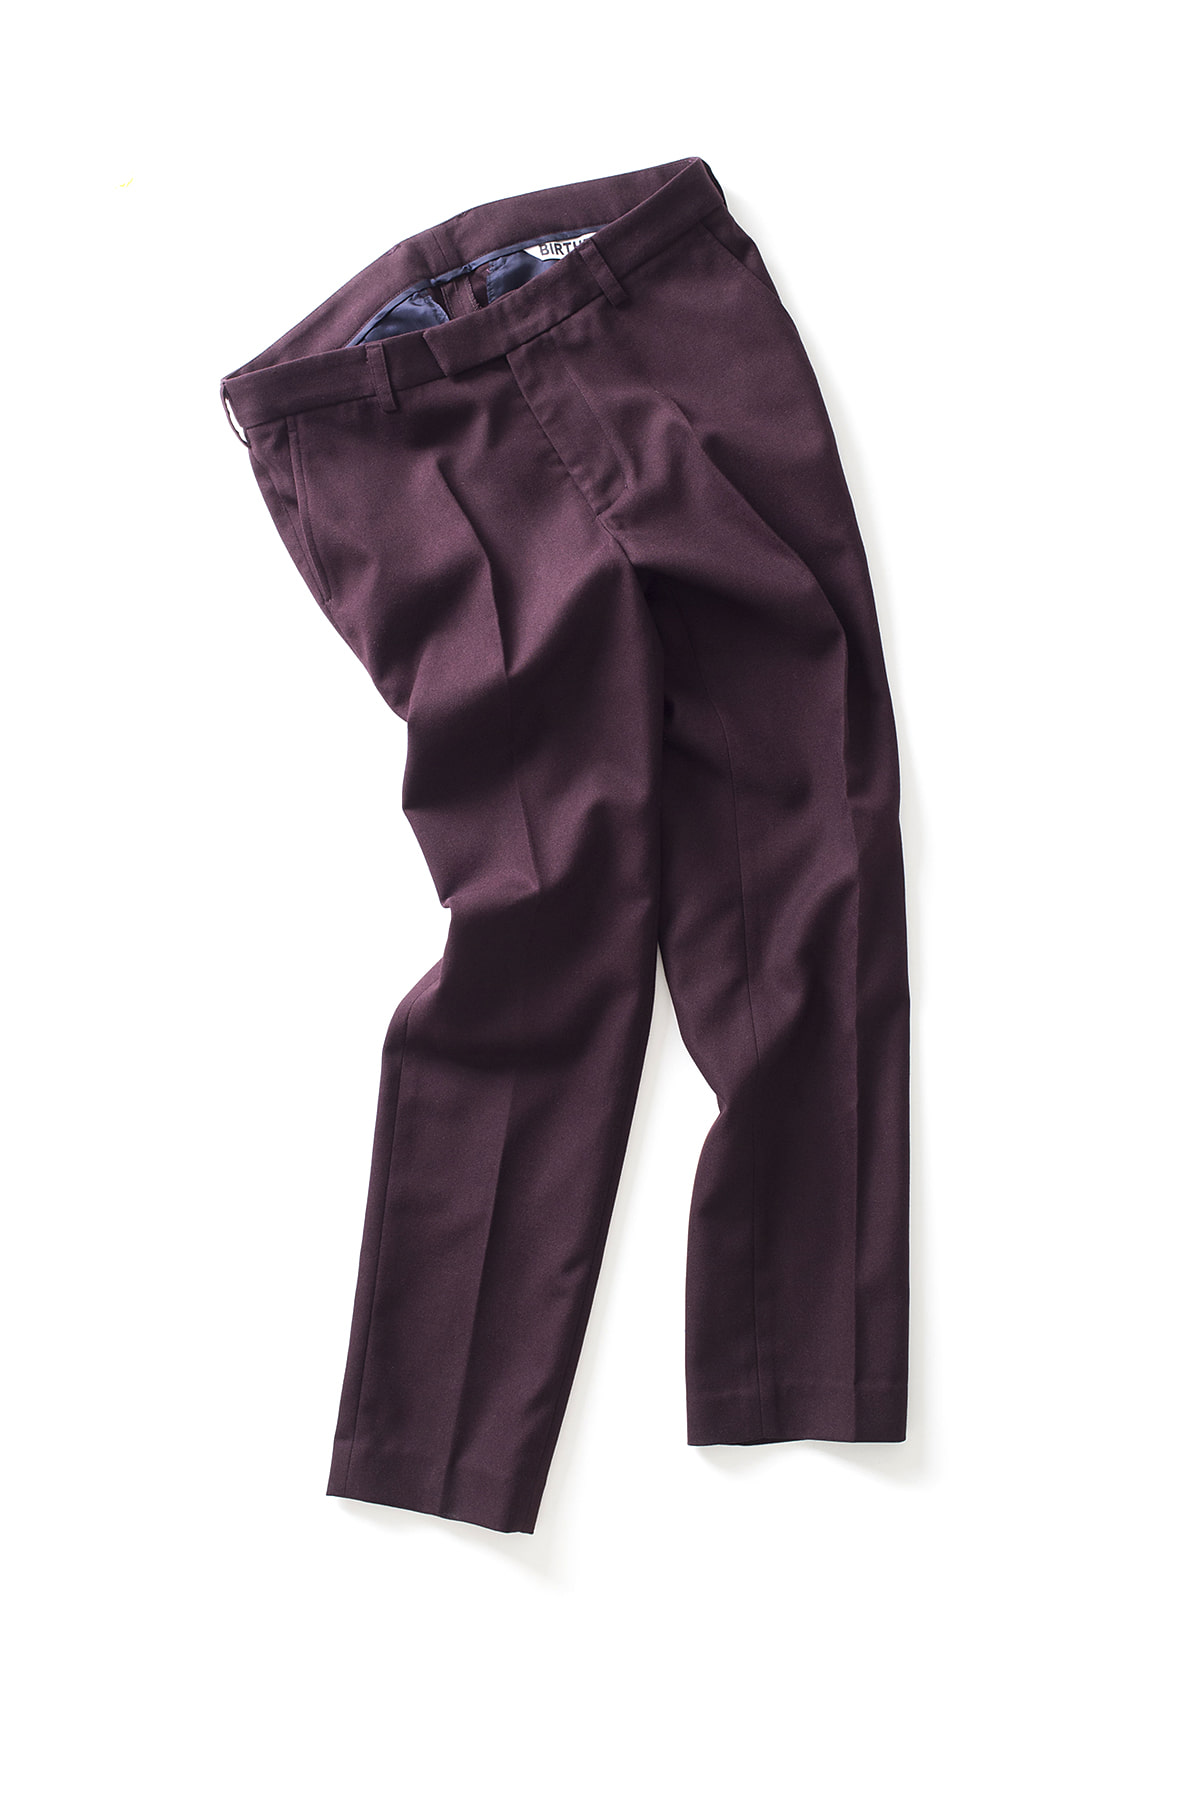 BIRTHDAYSUIT : Daily Suit Trouser (Burgundy)